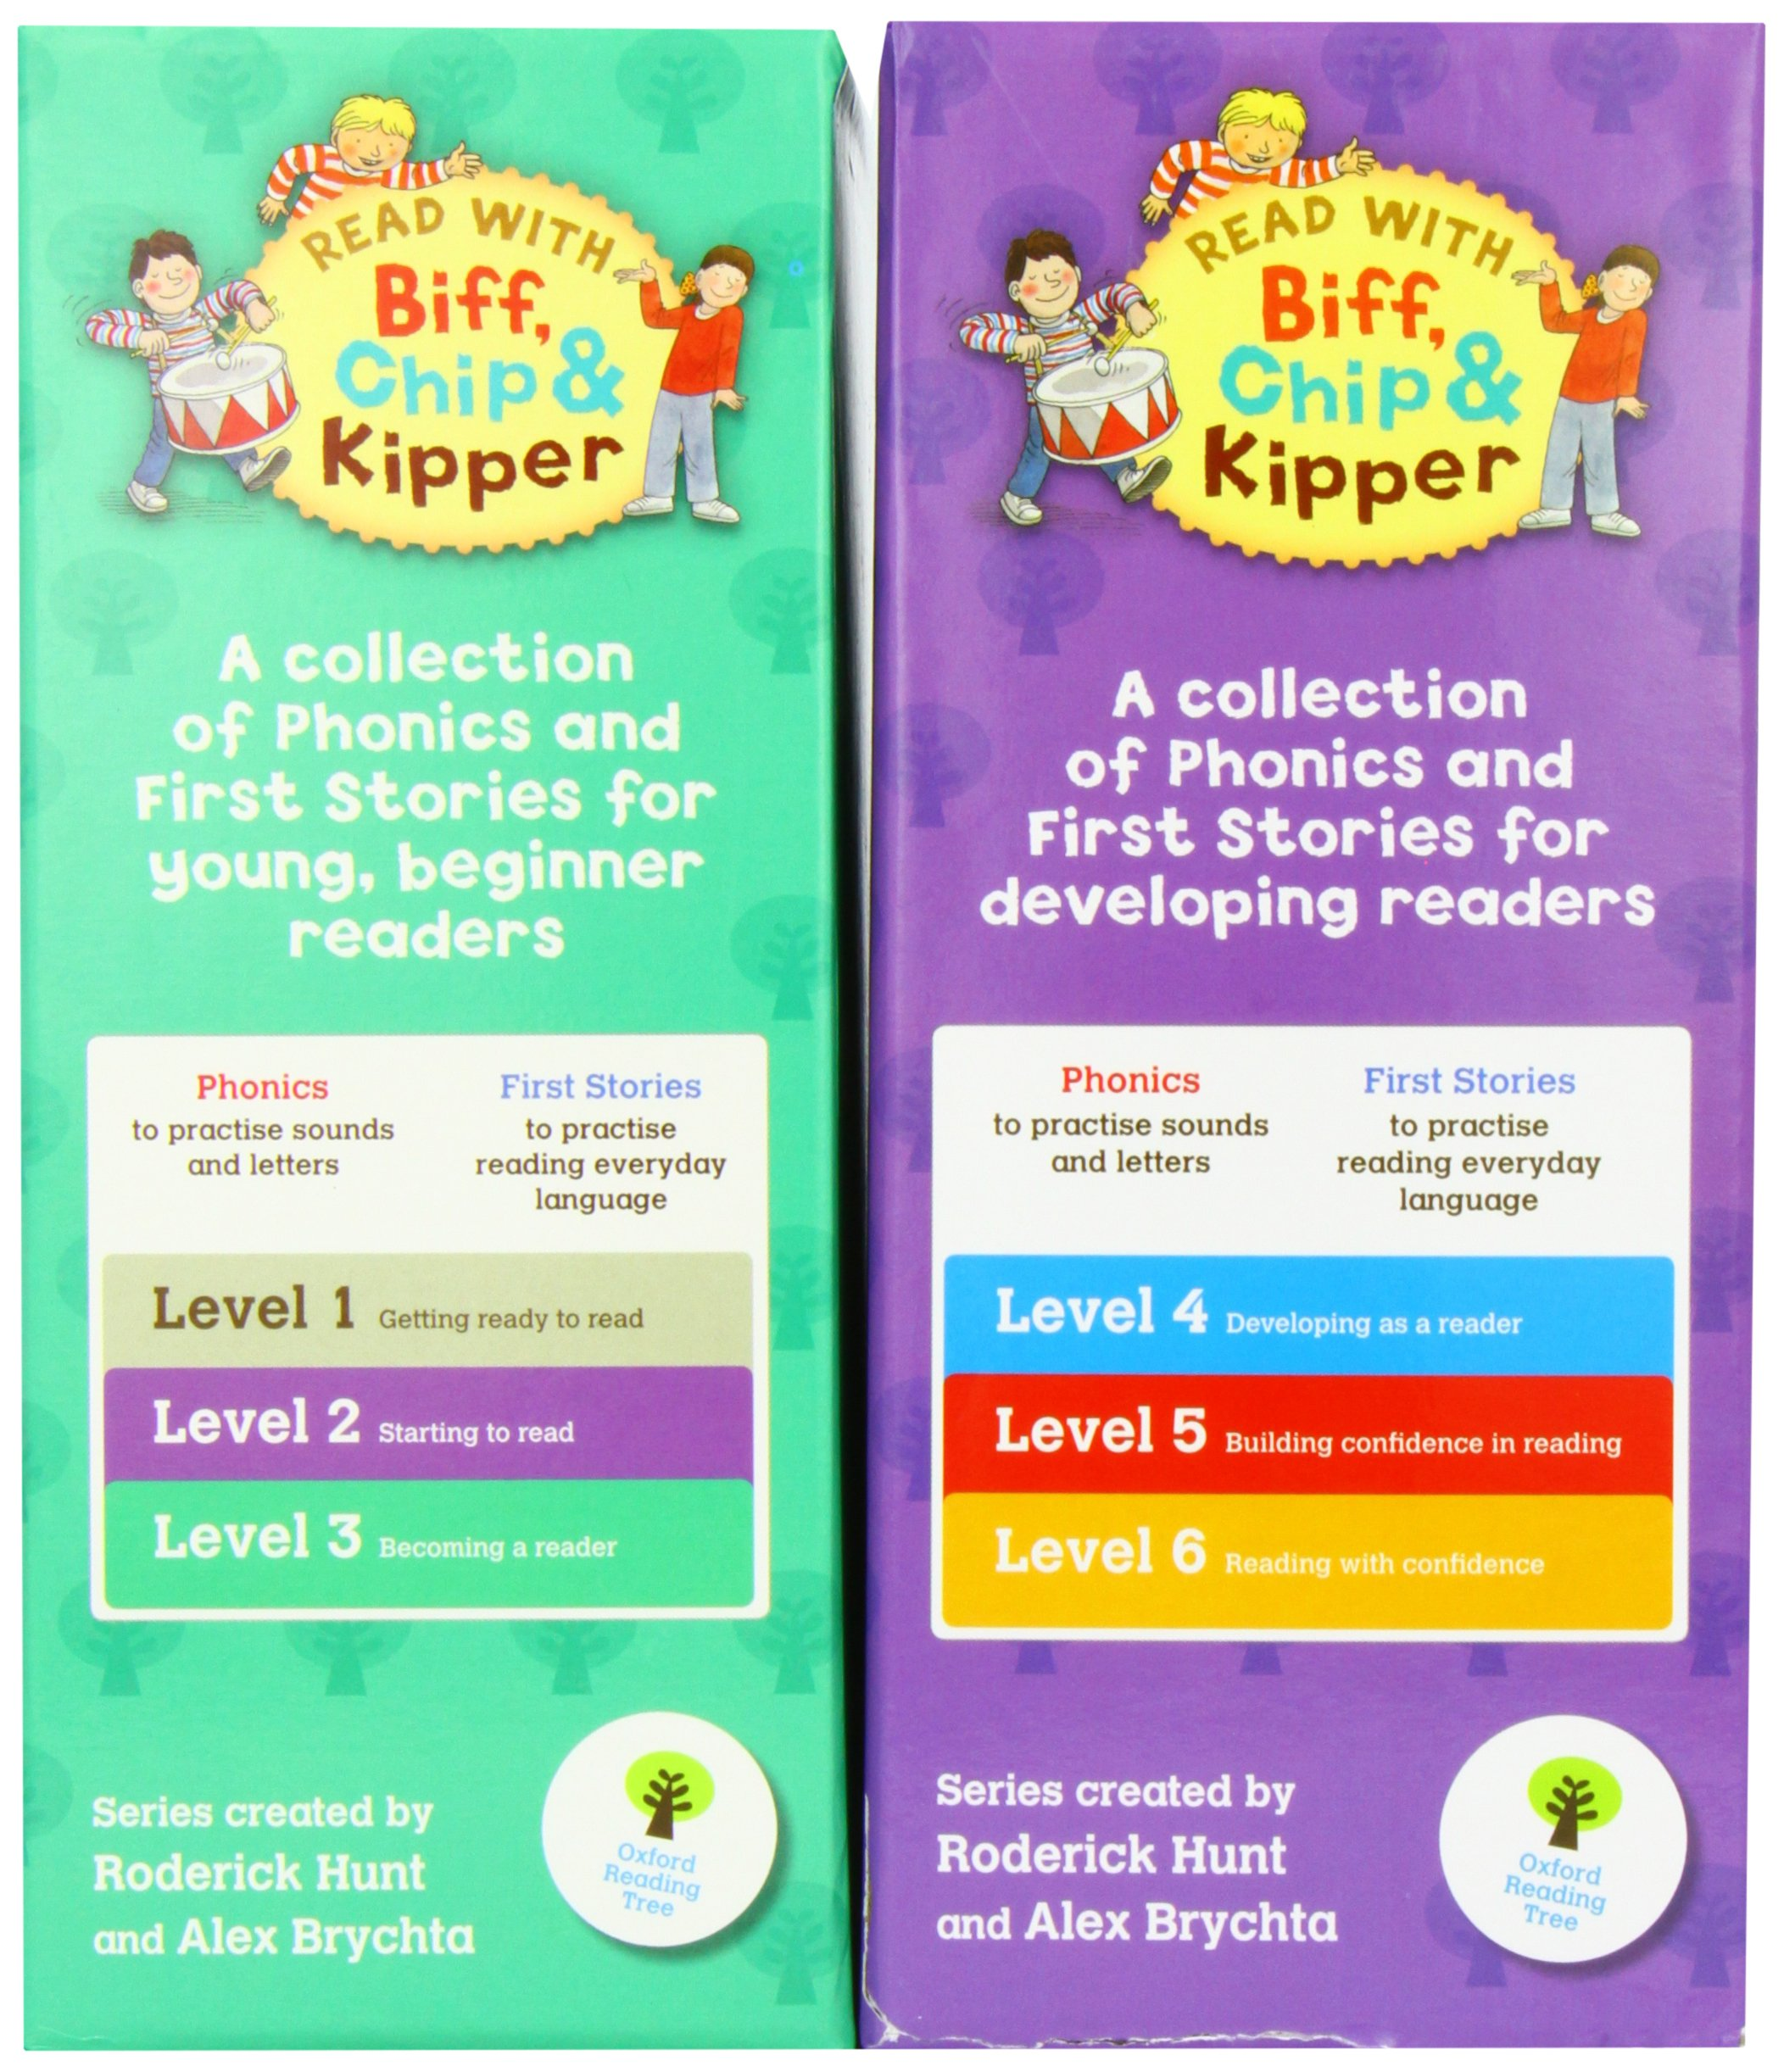 Read At Home Biff Chip Kipper Collection 48 Books Set Pack 24 X Phonics Books And 24 X First Stories Books 9788033655152 Amazon Com Books